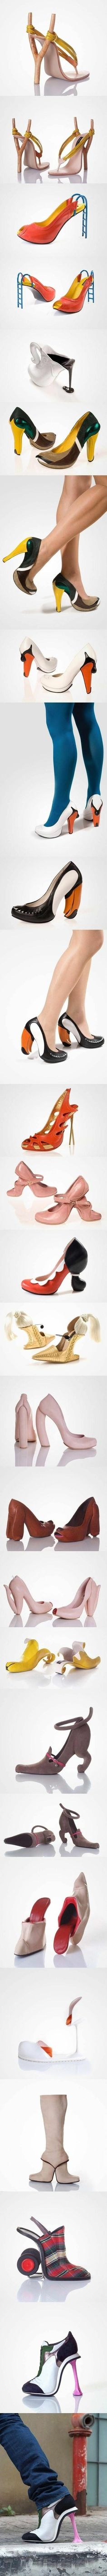 Funny Women's Shoes, would you try em ladies?